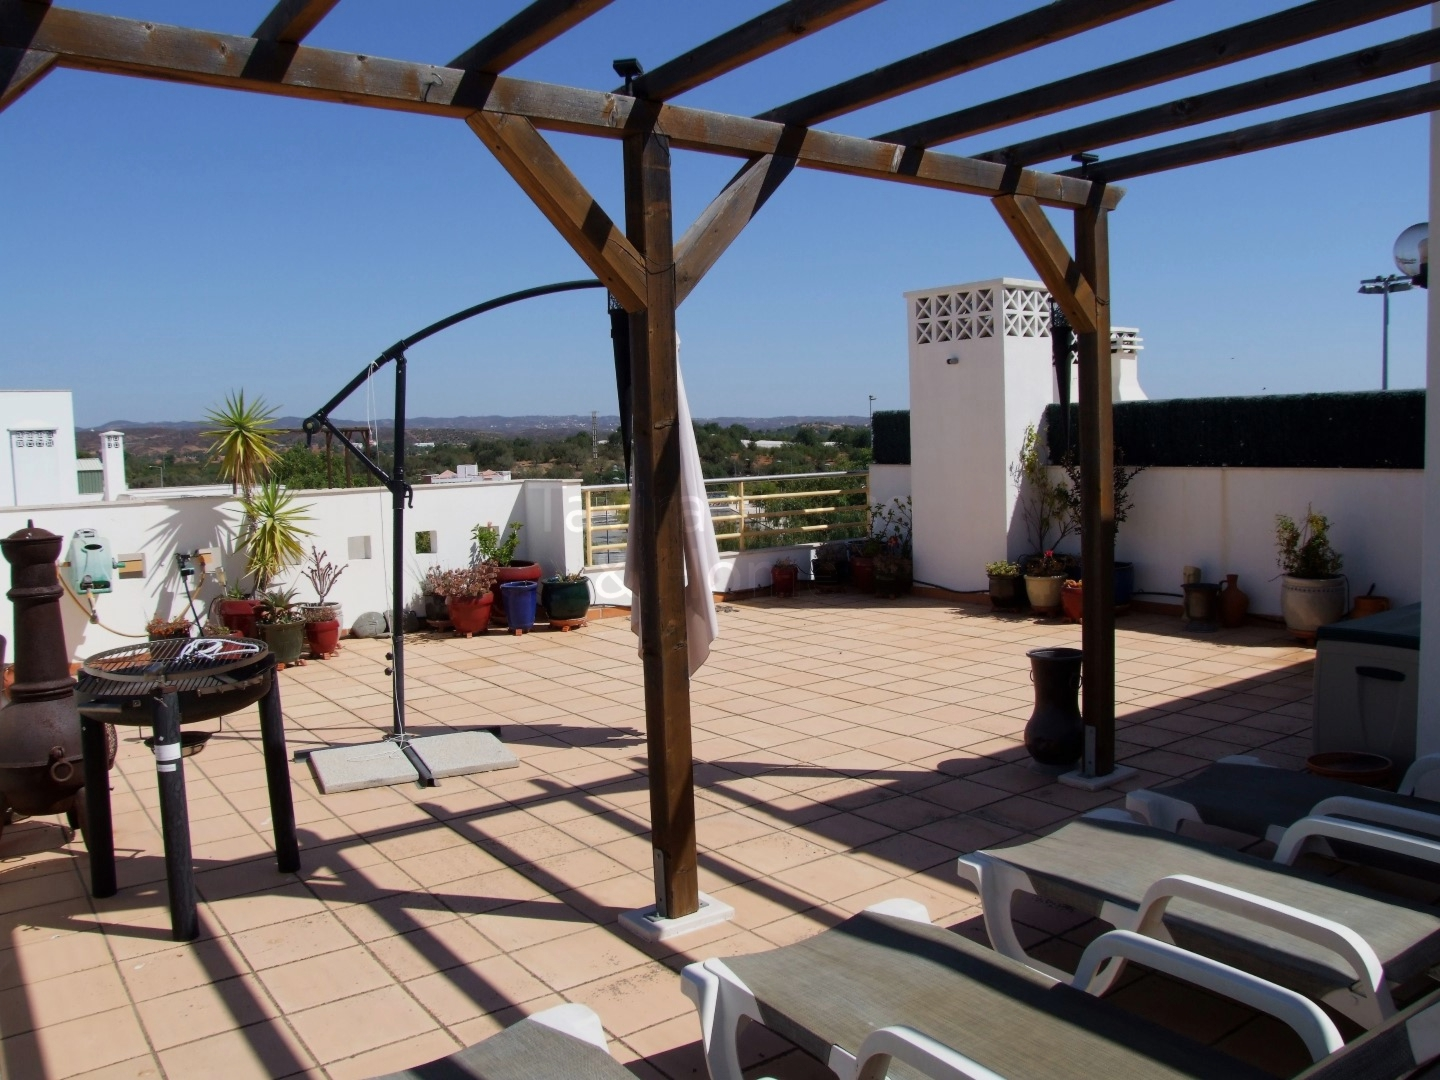 A0562 - 3 Bedroom Apartment With Large Roof Terrace  Tavira  Portugal